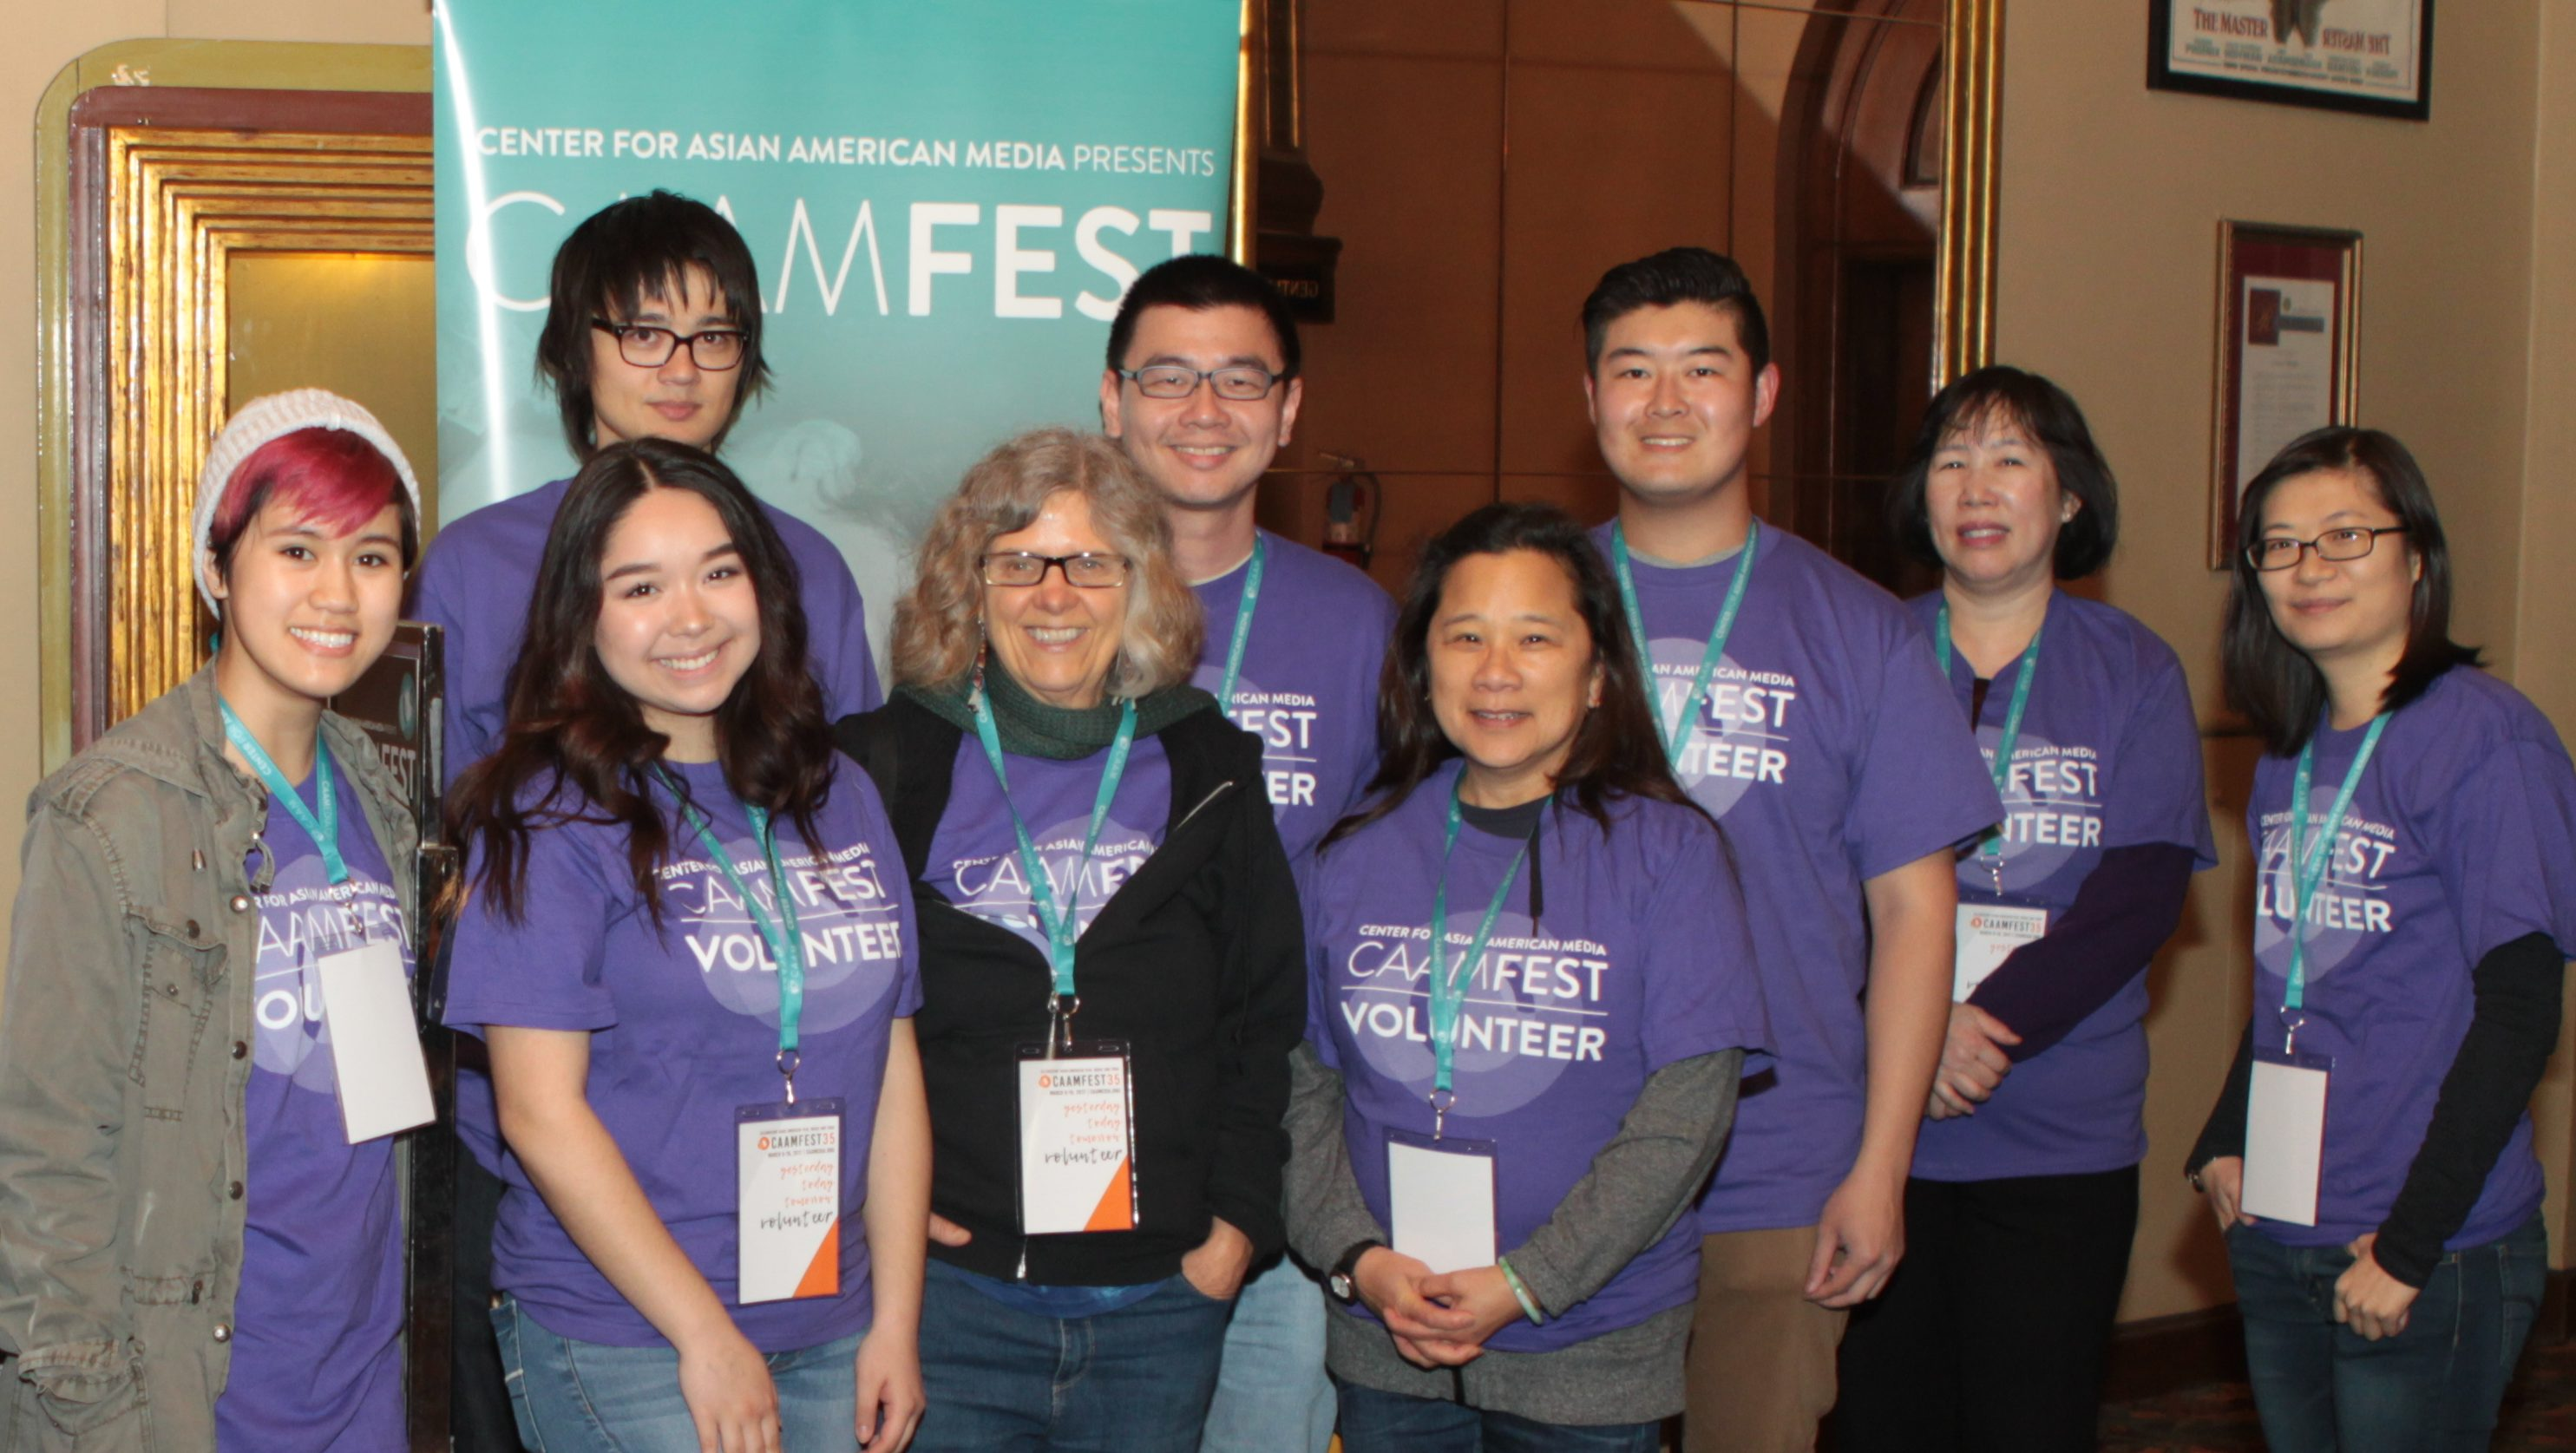 Volunteer for CAAMFest 2019!